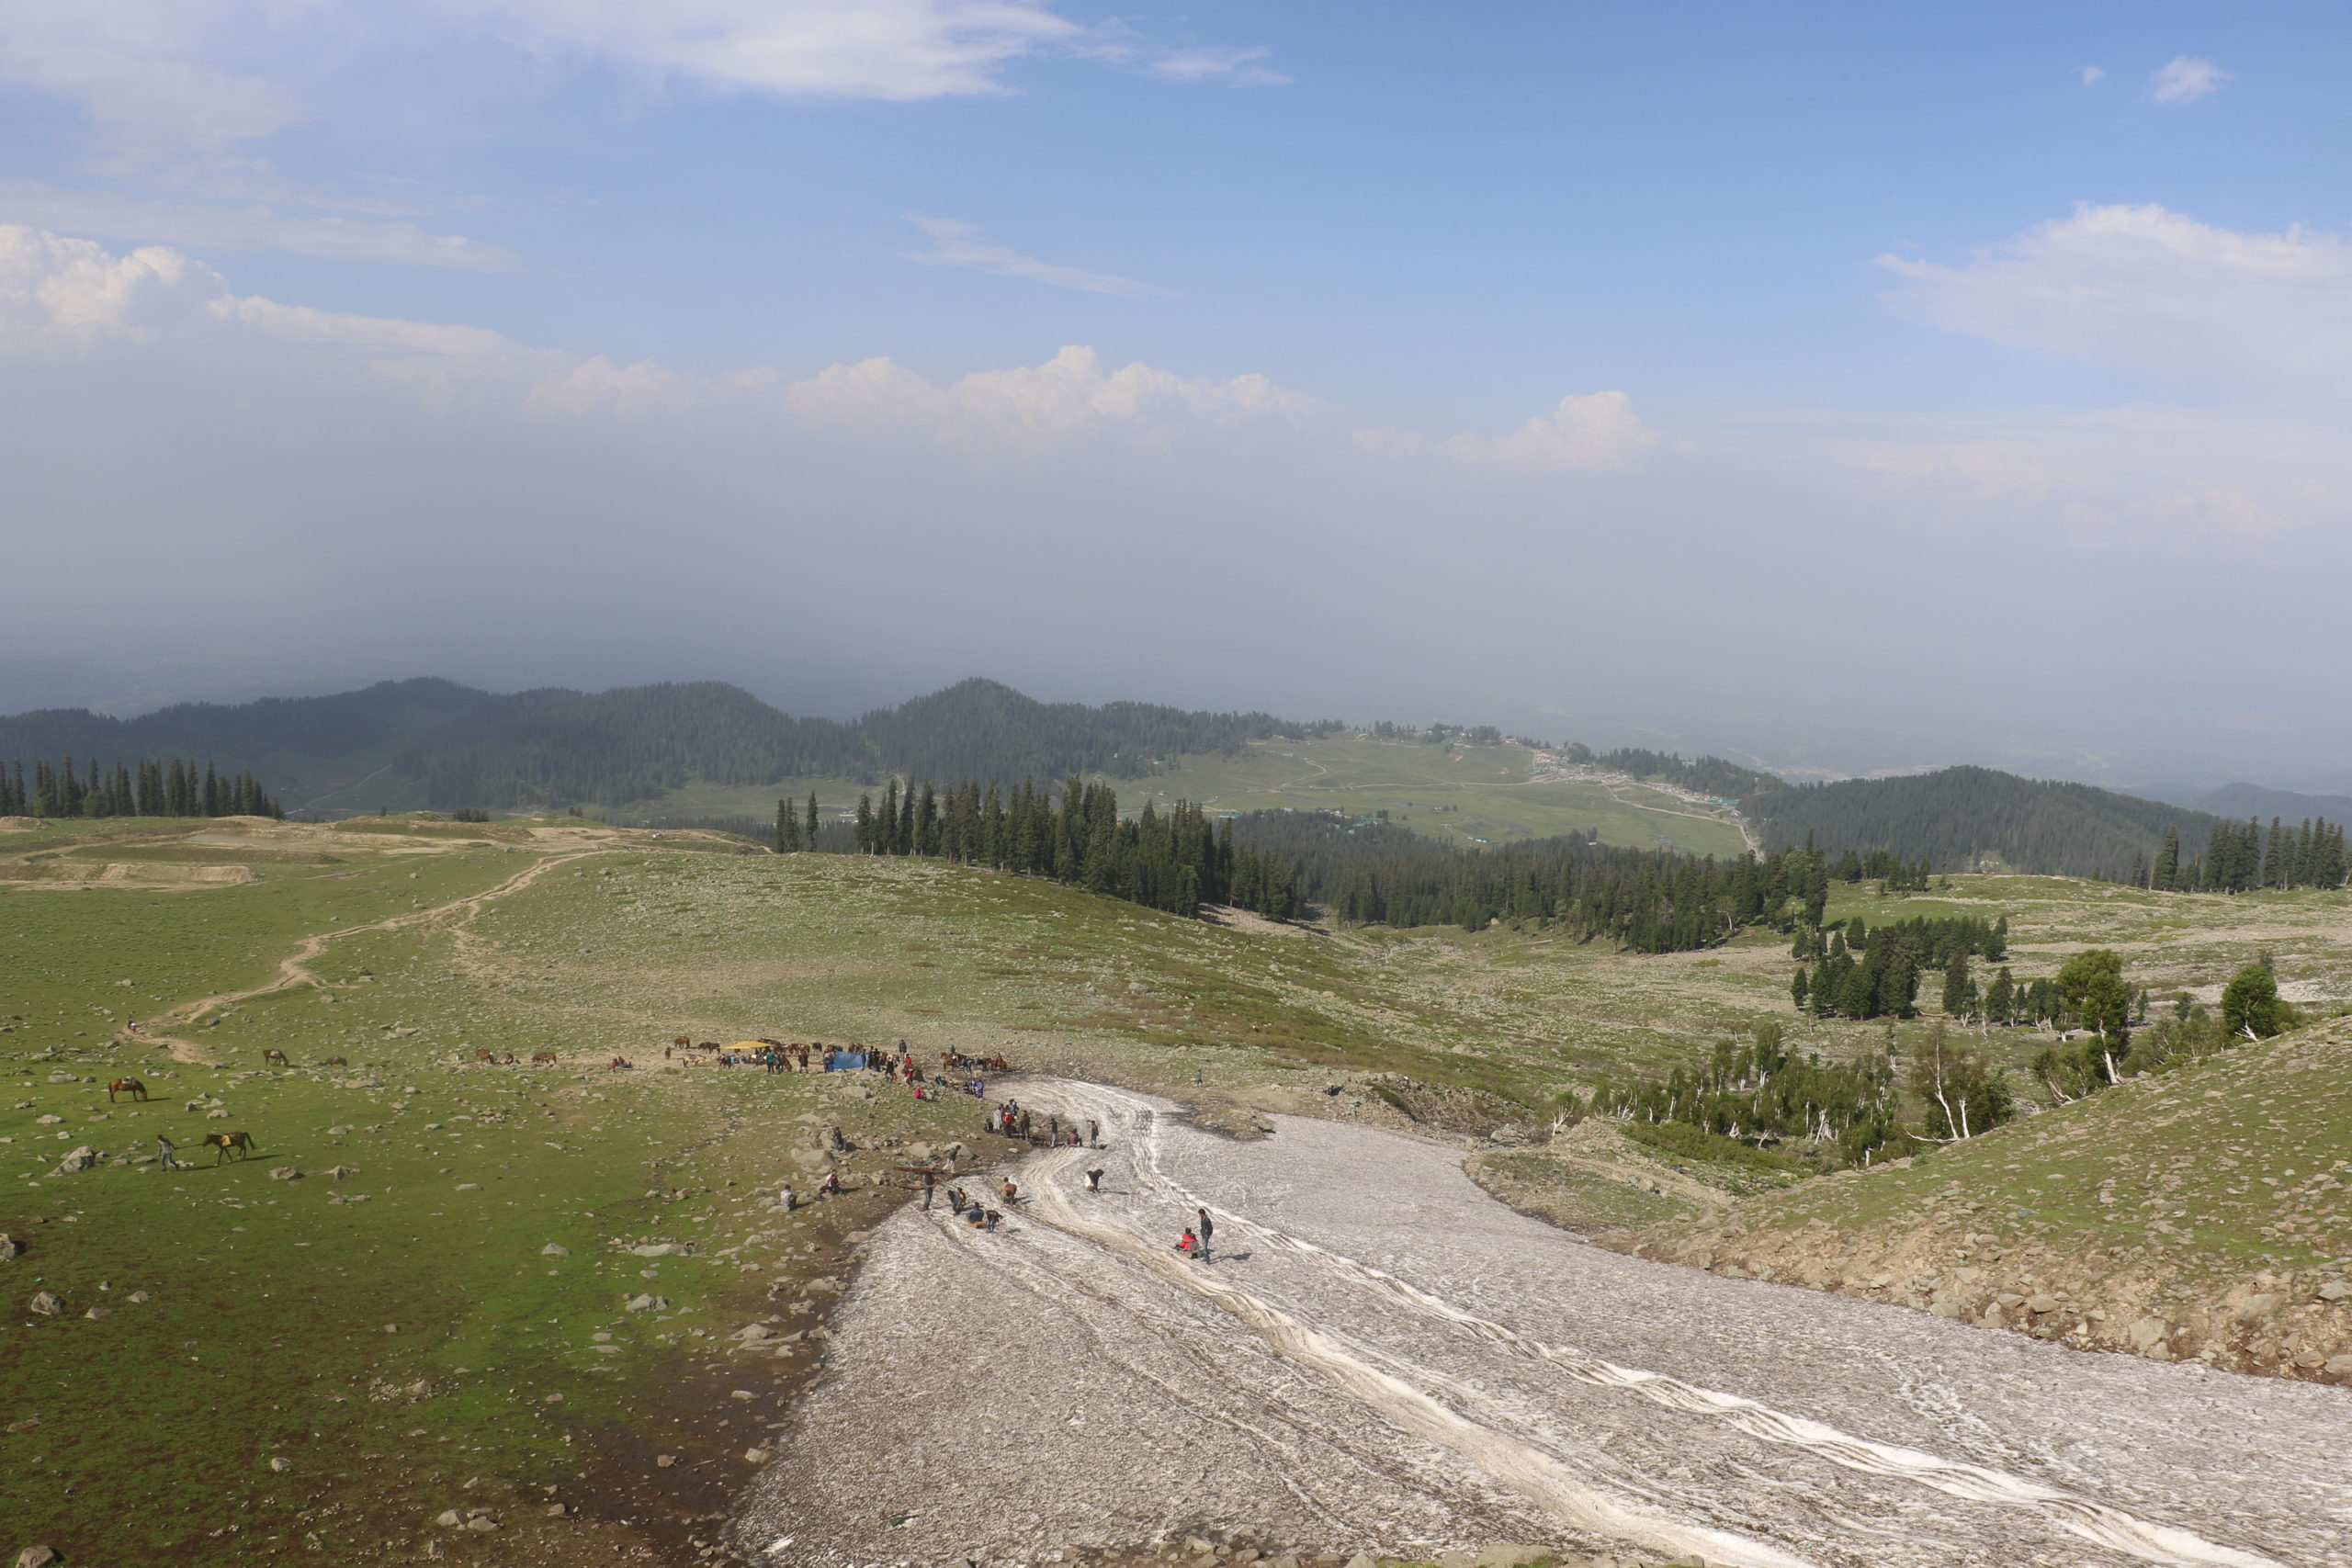 Khilanmarg meadow at Gulmarg where tourists visit and medicinal plants have vanished [image by: Mudassir Kuloo]